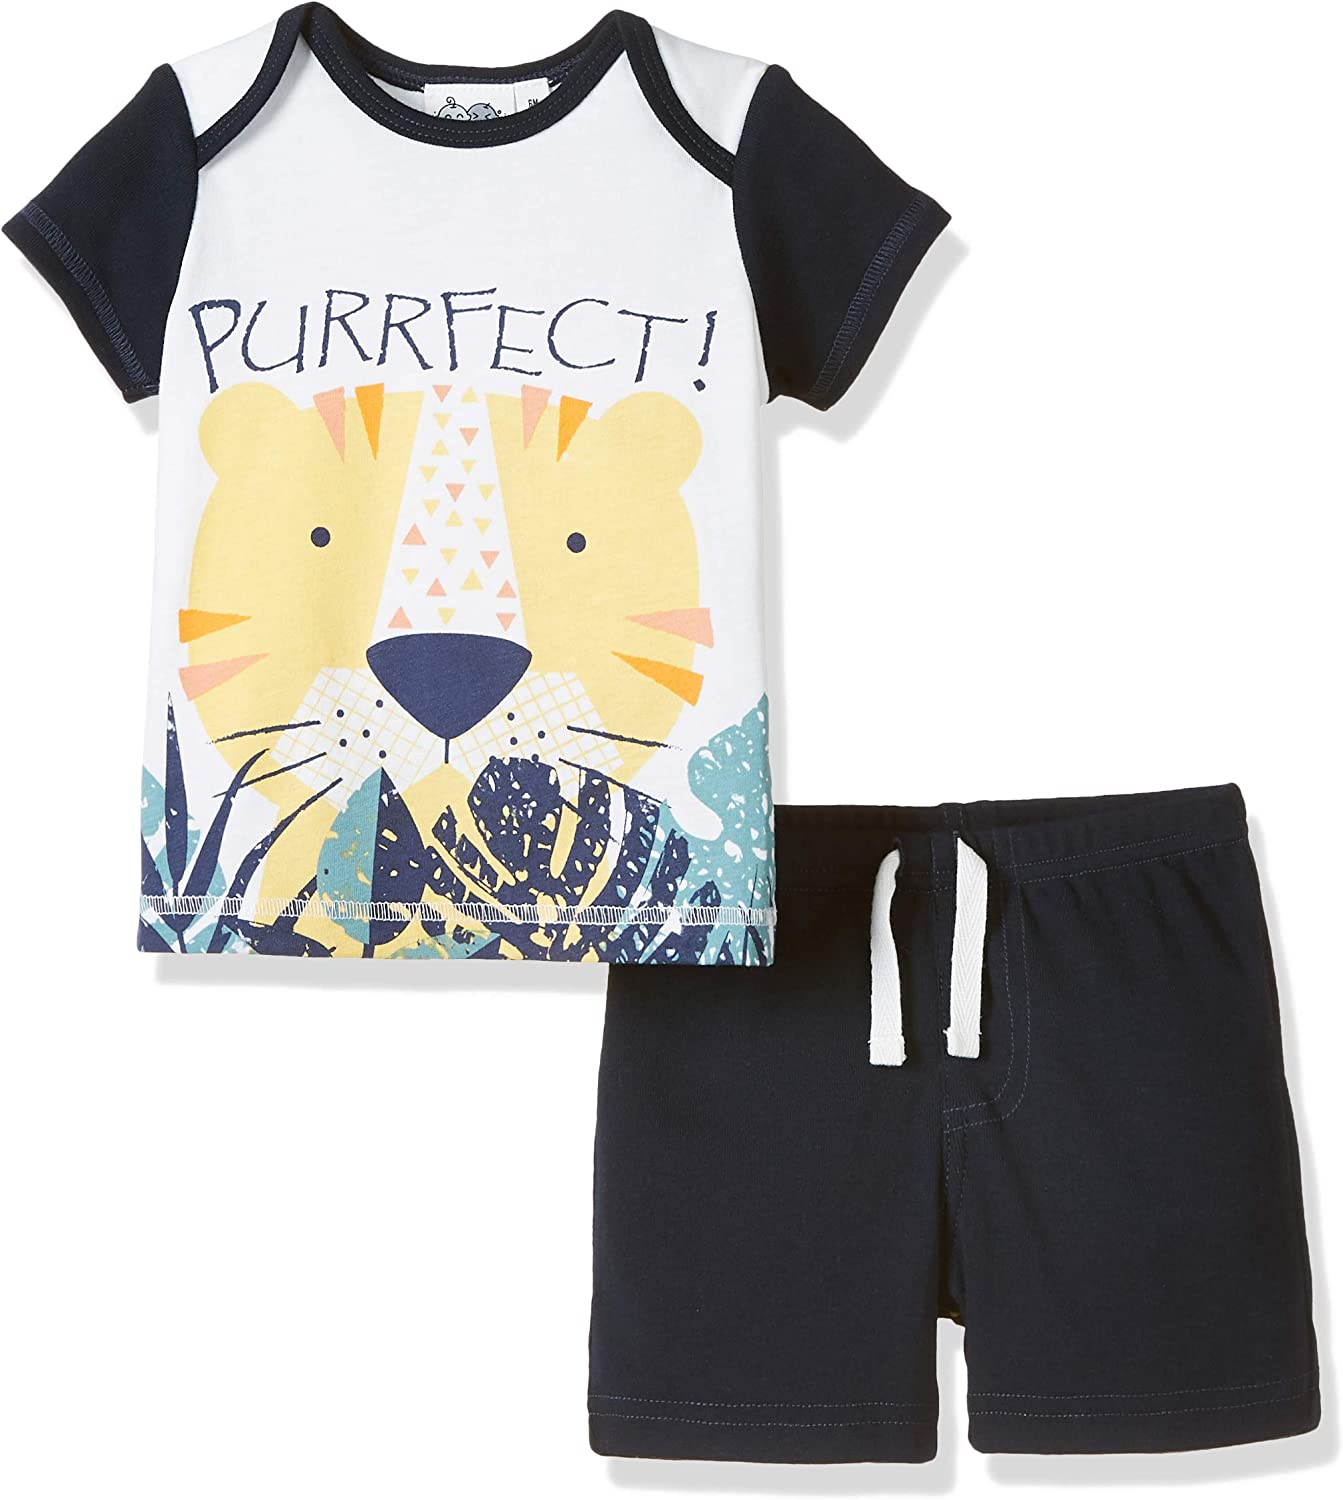 Silly Apples Unisex Baby Spring Outfit 2-Piece Short-Sleeve T-Shirt and Pant Set